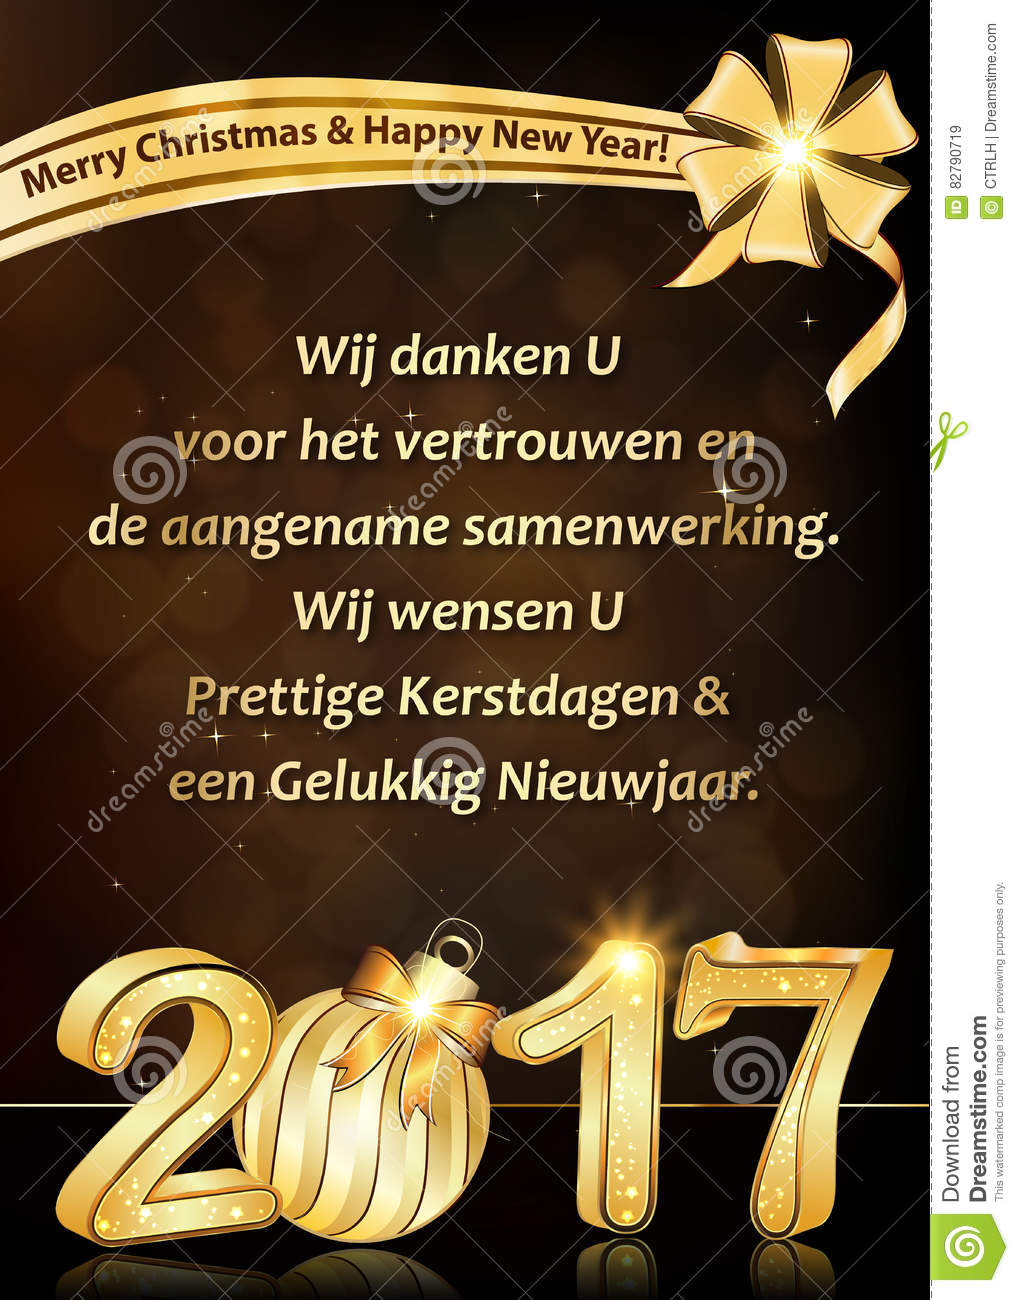 Thank you dutch business new year greeting card stock image image thank you dutch business new year greeting card m4hsunfo